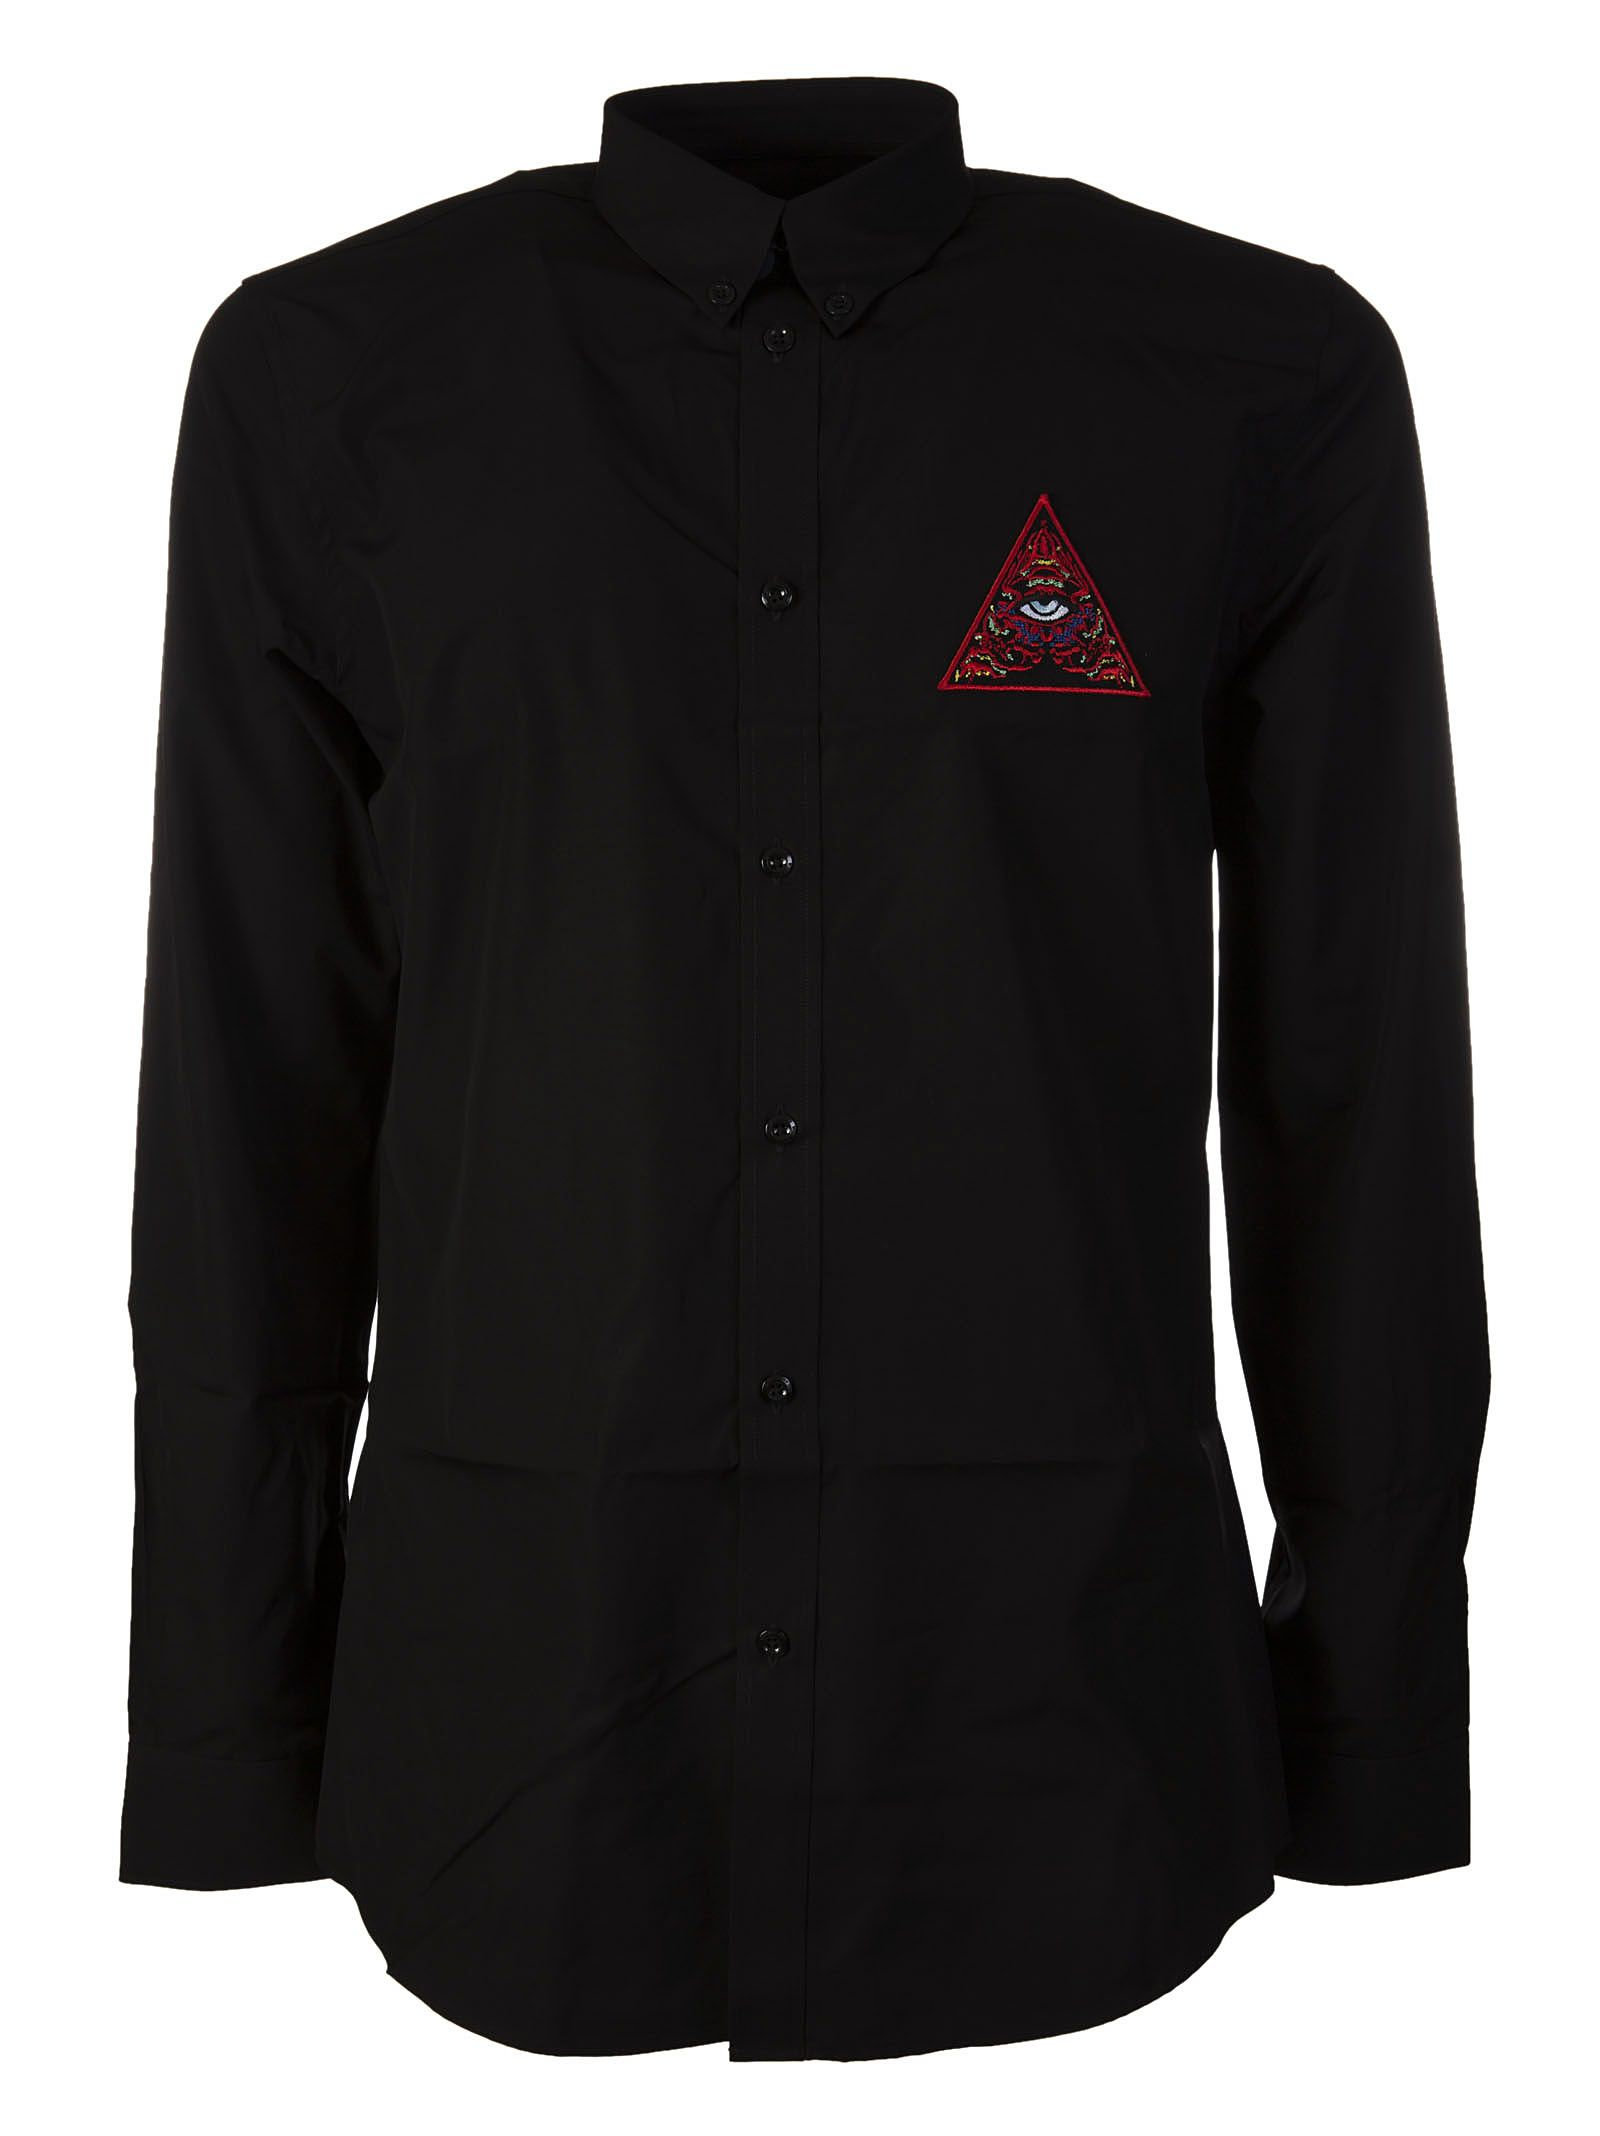 Givenchy Realize Embroidered Shirt